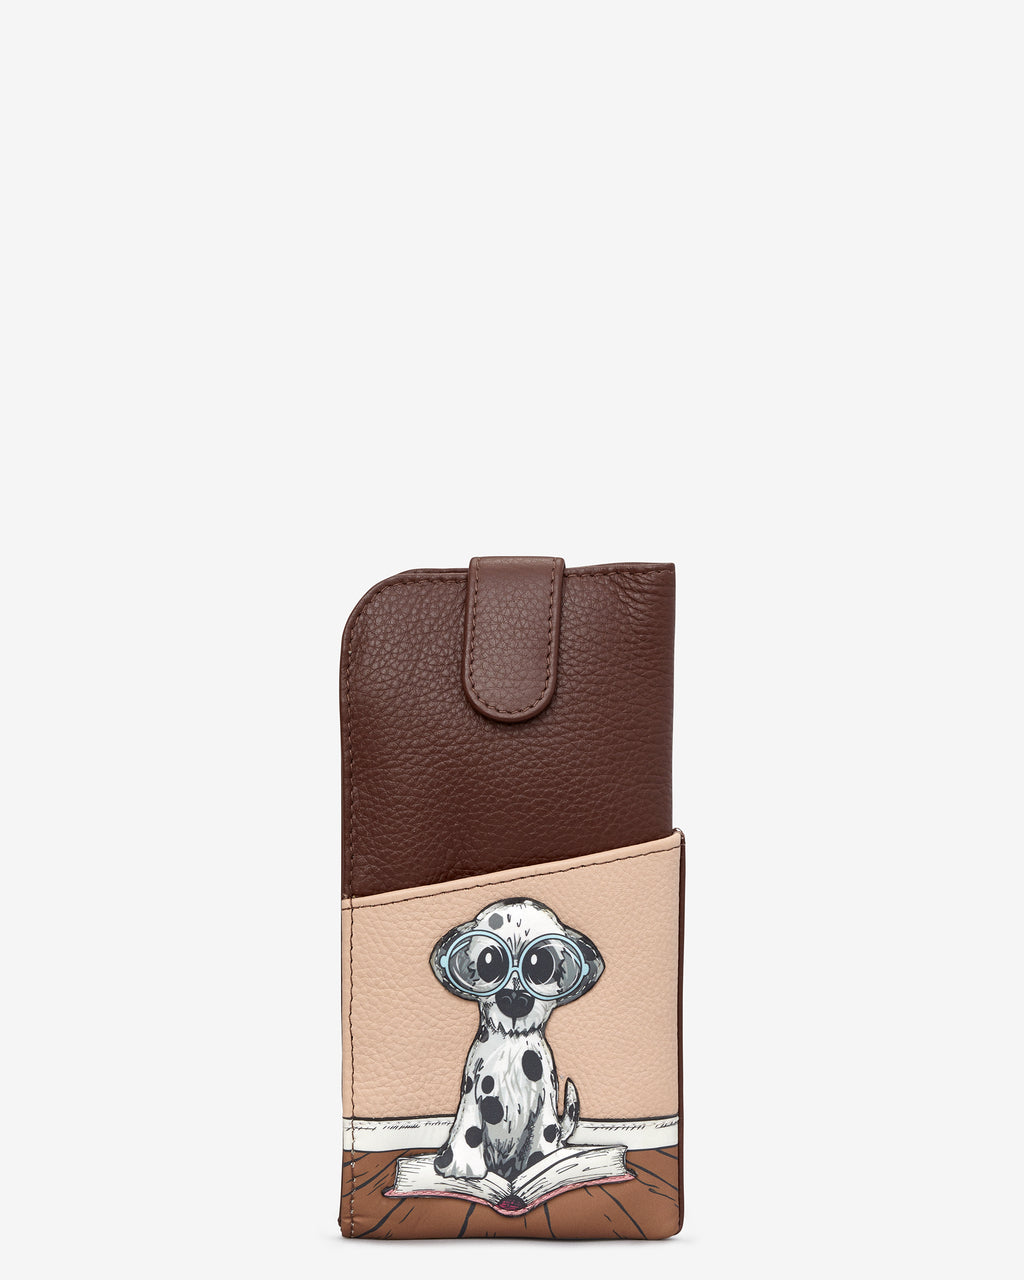 Bookhound Gang Leather Glasses Case